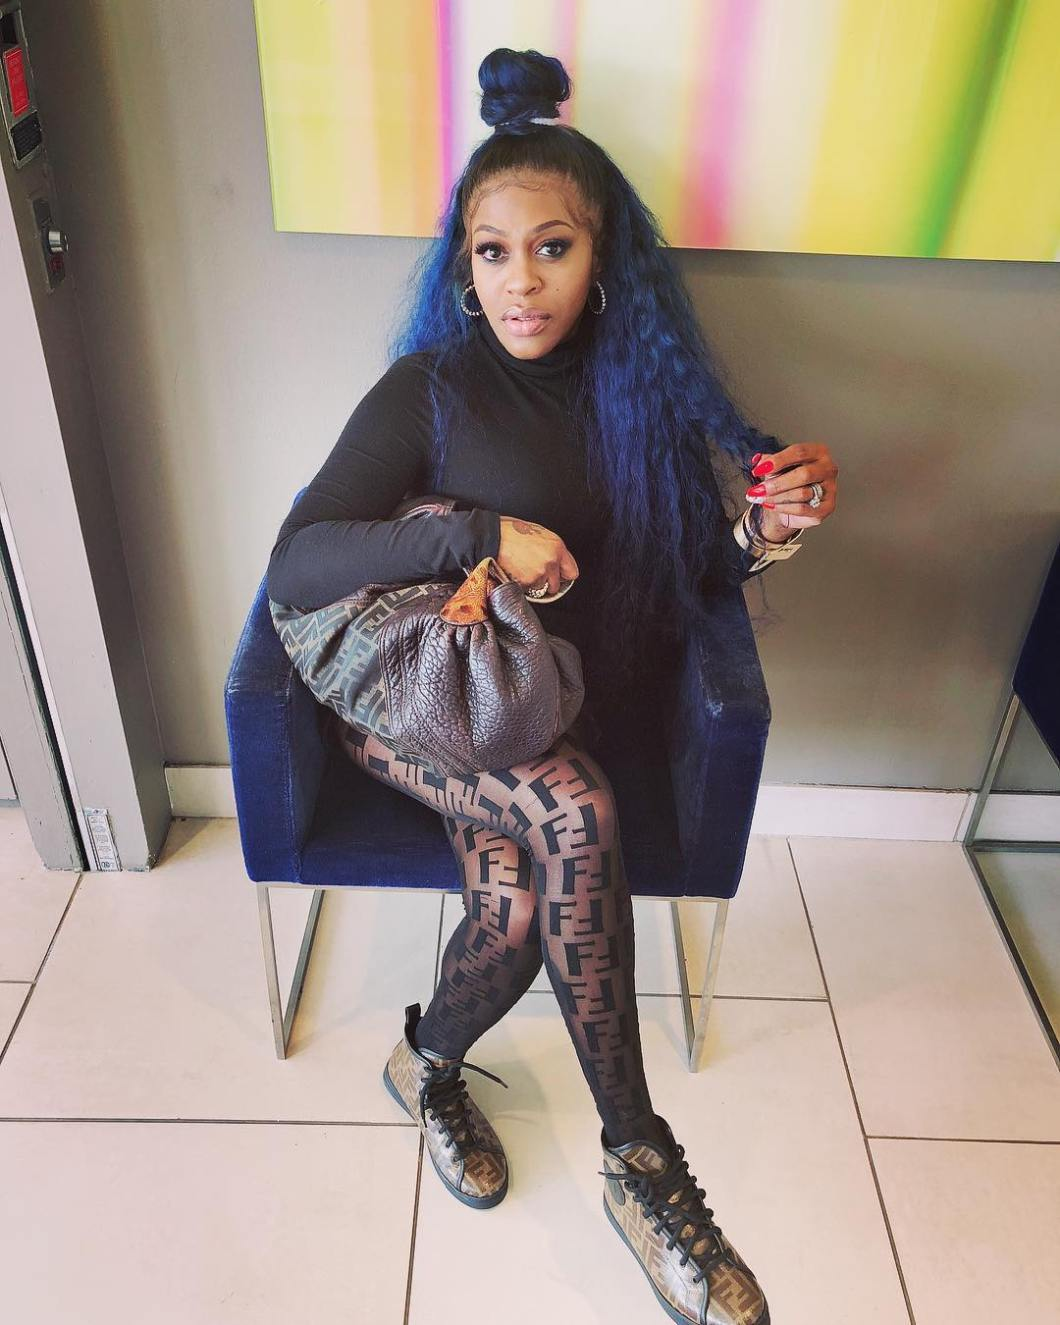 Lil Mo Age, Height, Weight, Wiki, Boyfriend of Model | Famousage